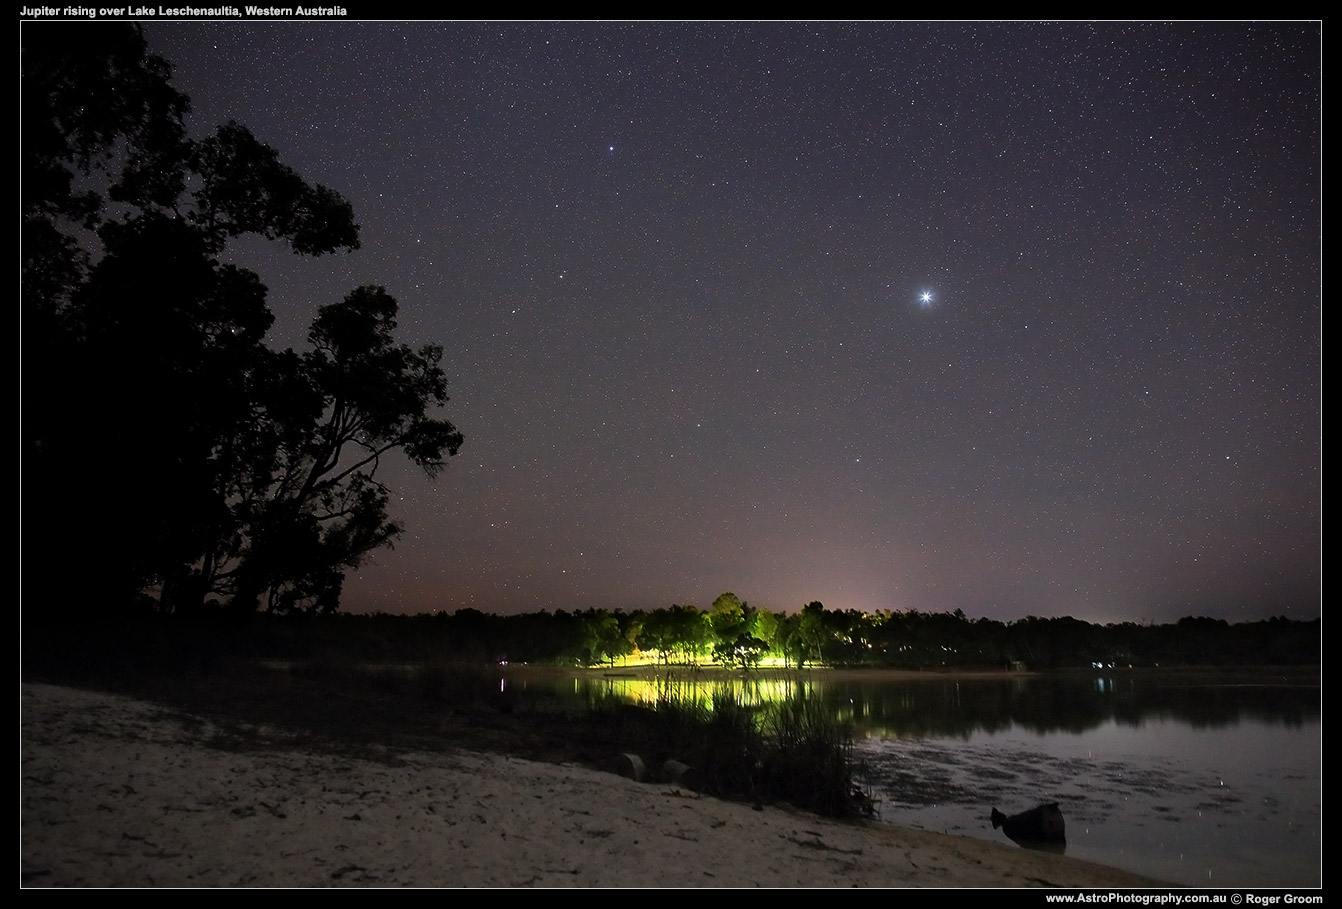 RG_IMG_201602_9272-Jupiter-over-Lake-Leschenaultia